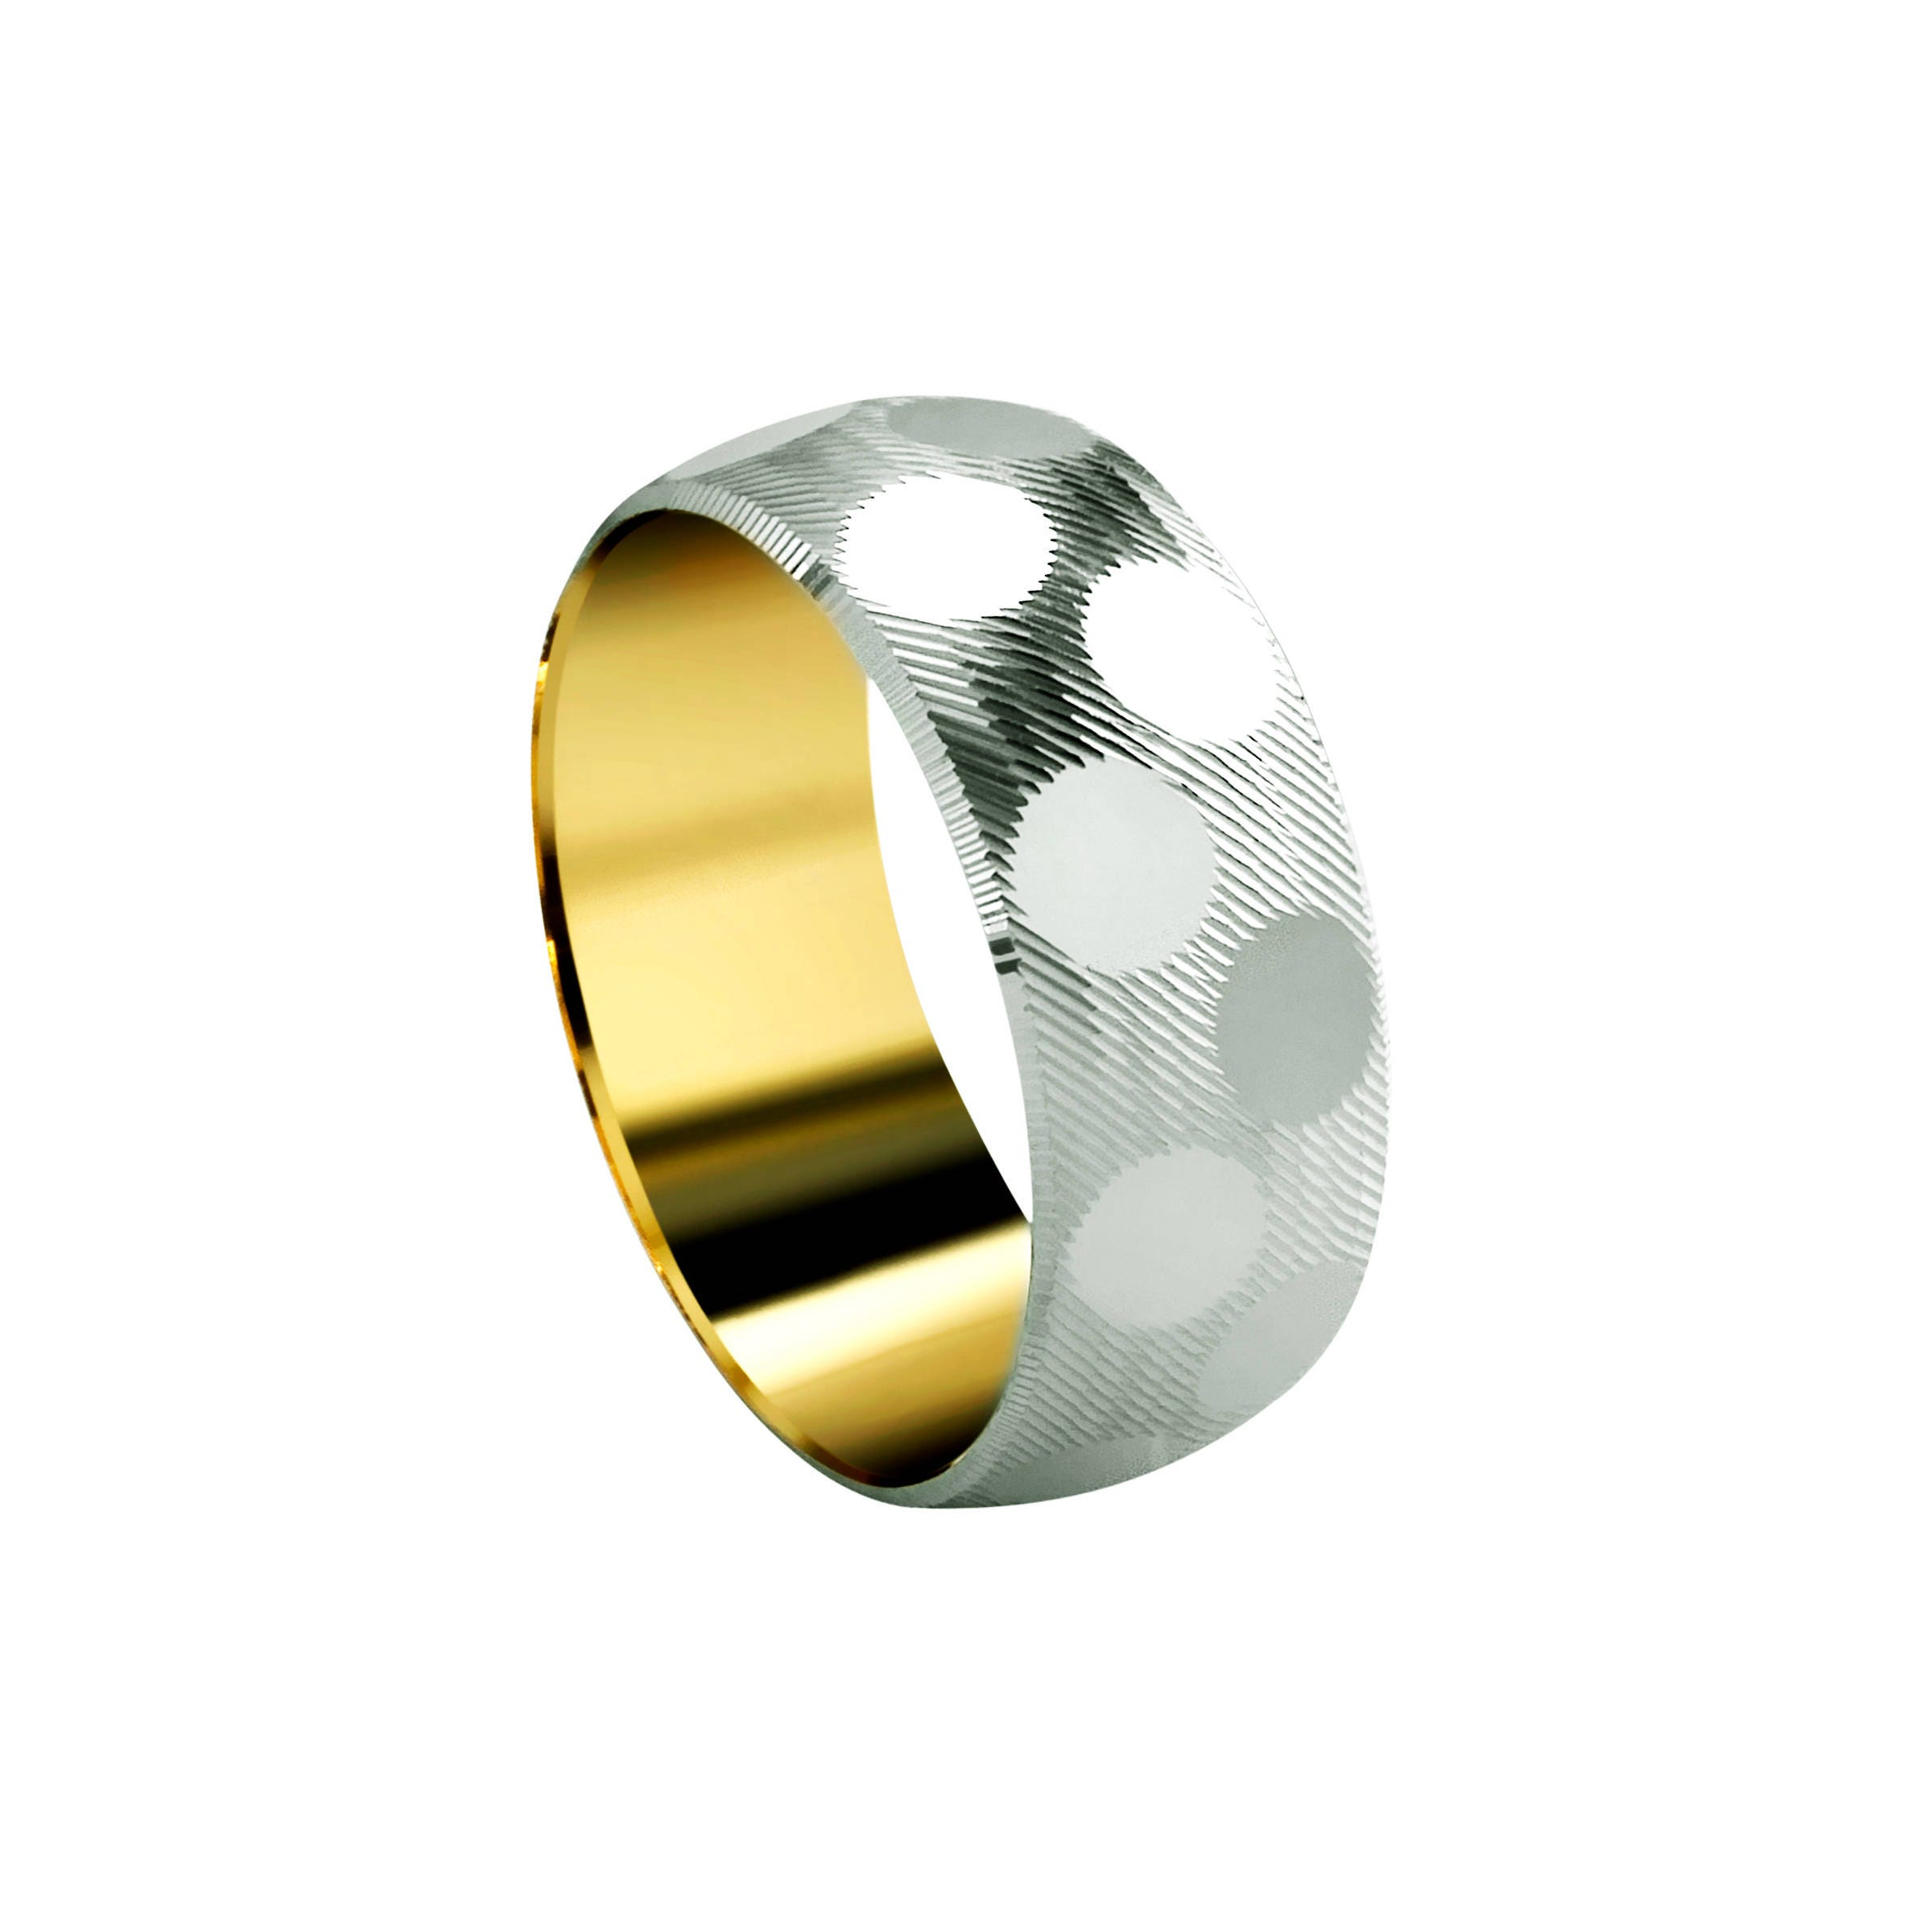 toronto wedding co amon product gold band vaughan bands untitled two luna tone jewellery custom hallow in mens